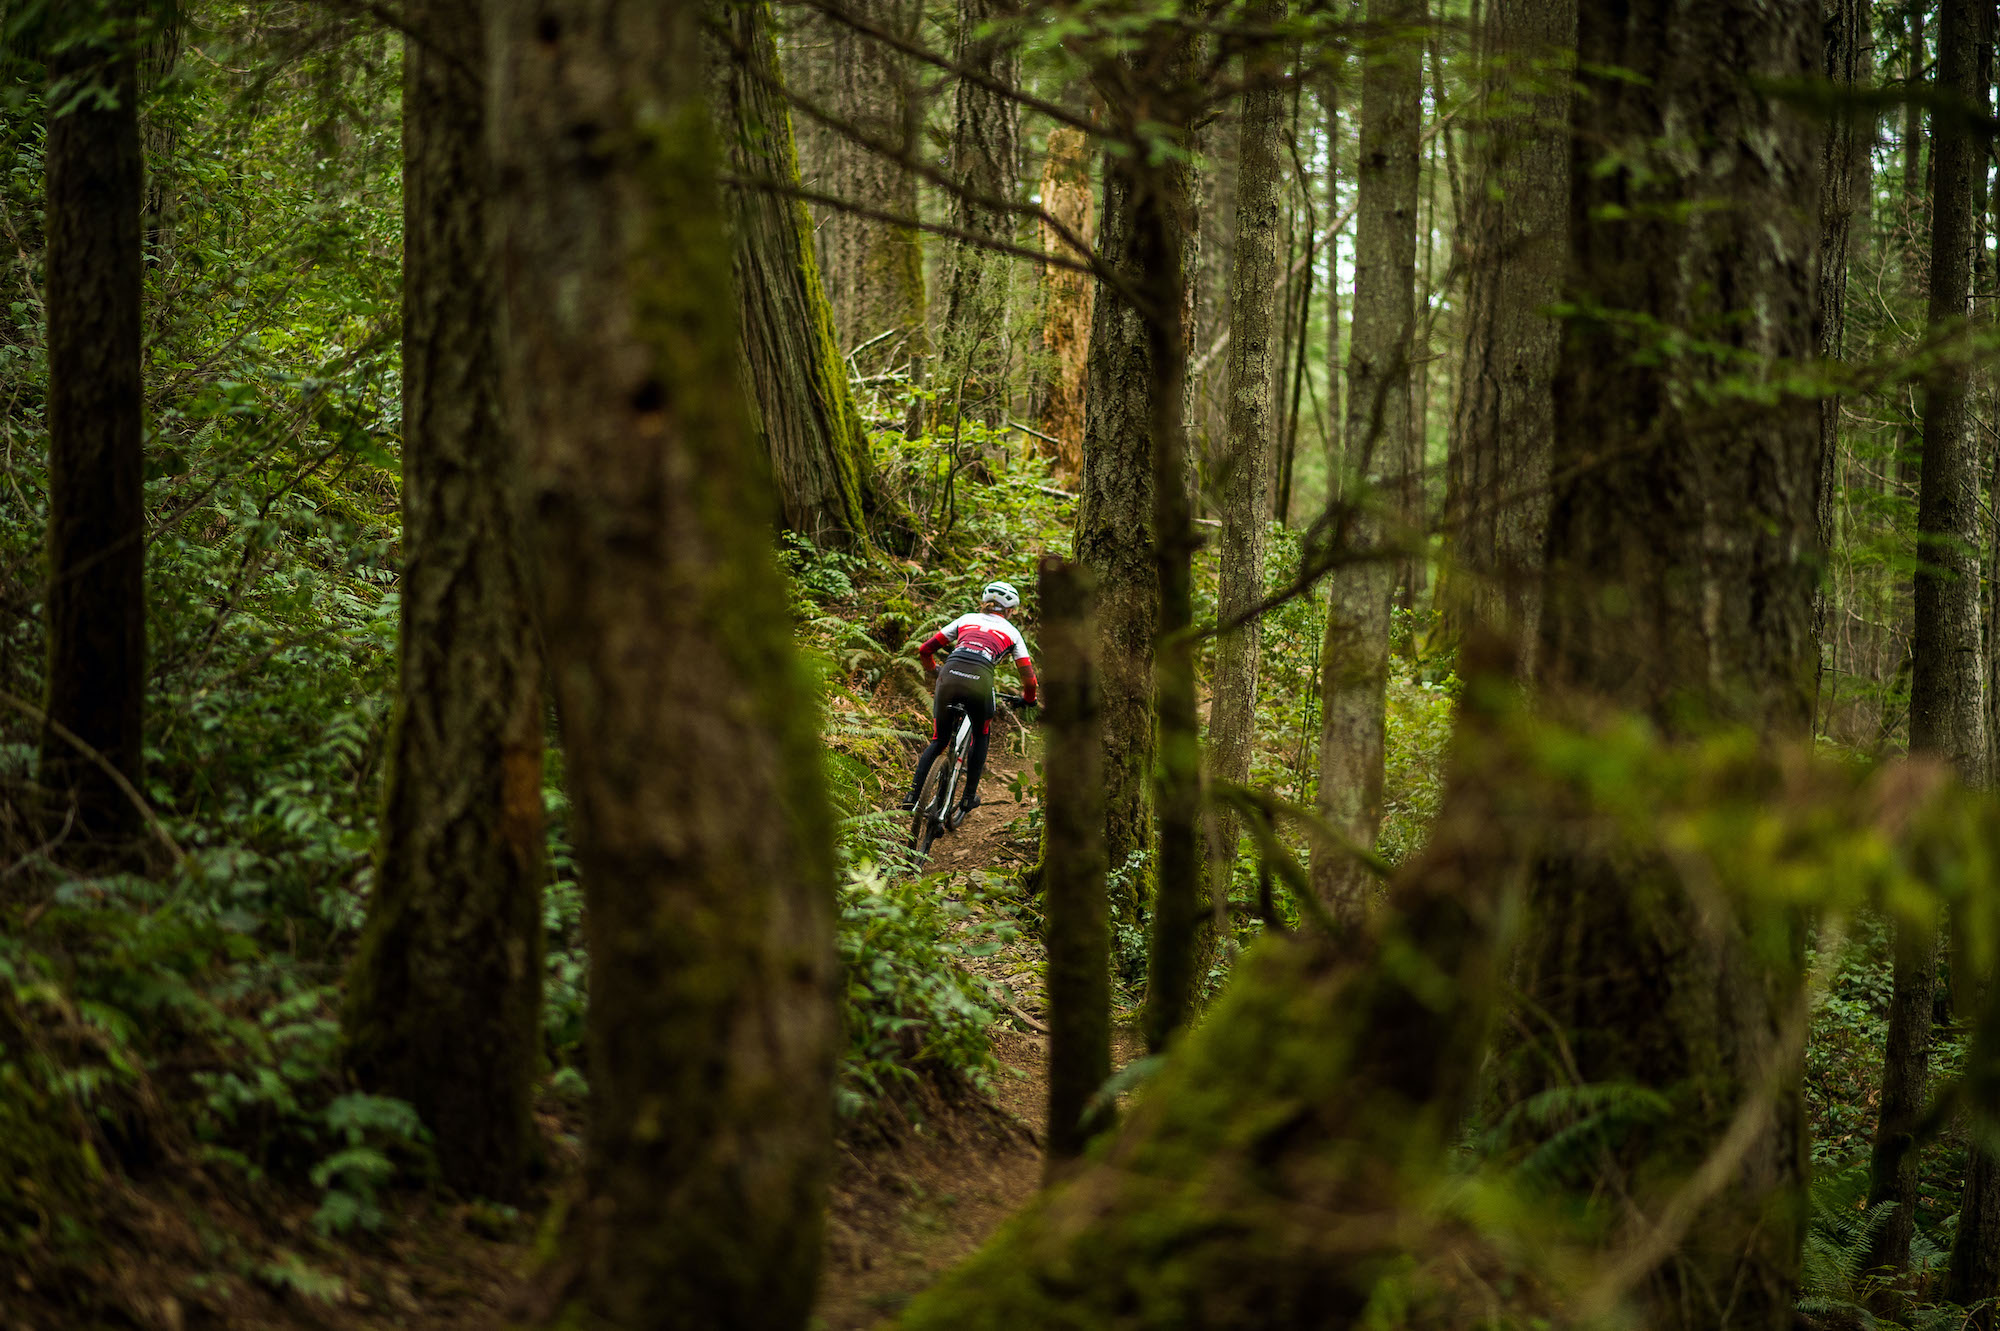 Bikes, bears, and biologists: can mountain biking coexist with nature?